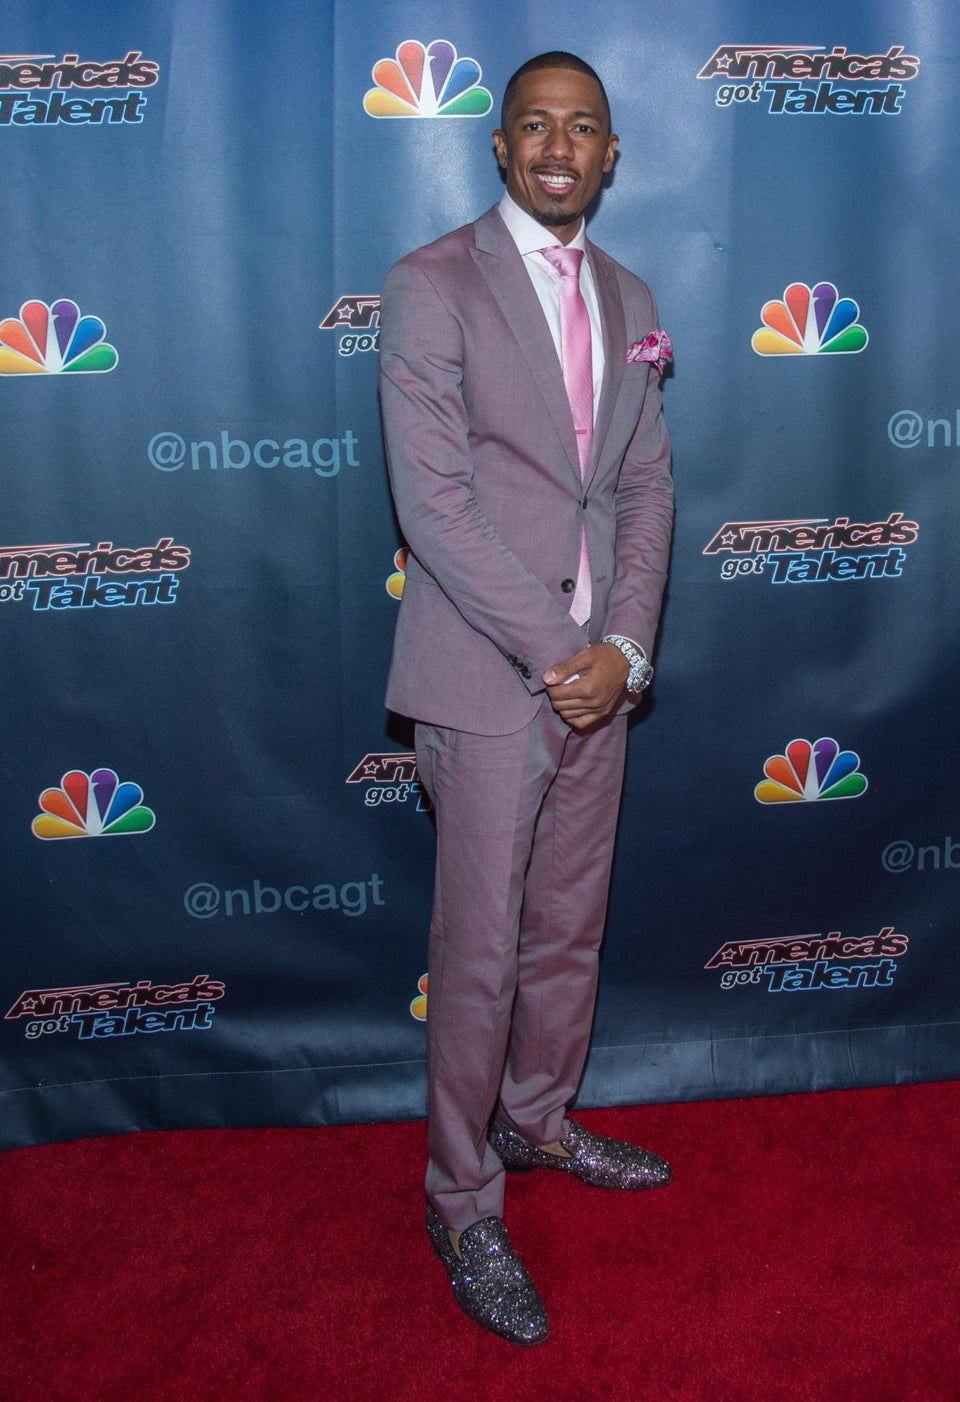 Nick Cannon Doubts He'll Marry Again After Split with Mariah Carey